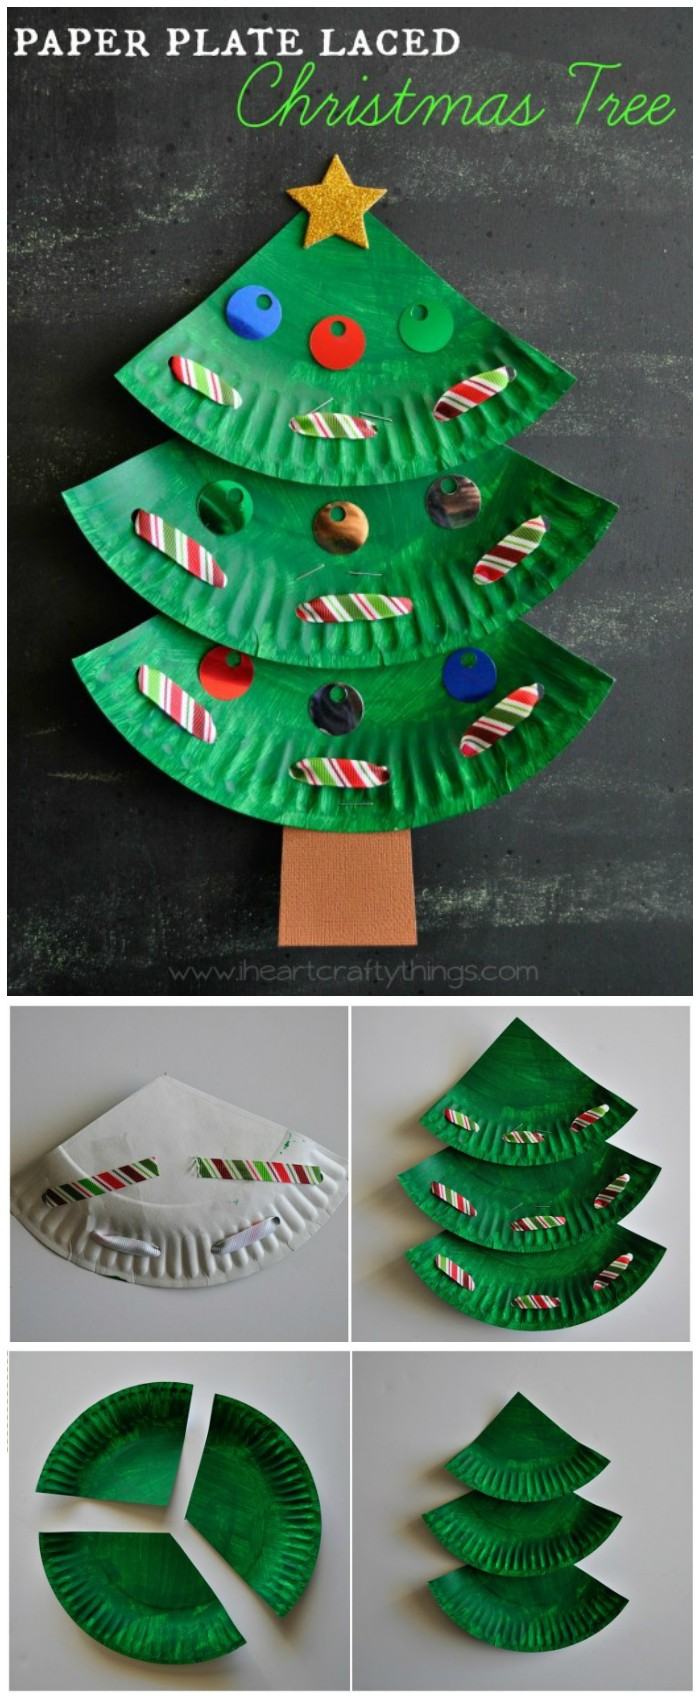 Paper Plate Laced Christmas Tree 25 Interesting Ideas to Make Easy Christmas Crafts